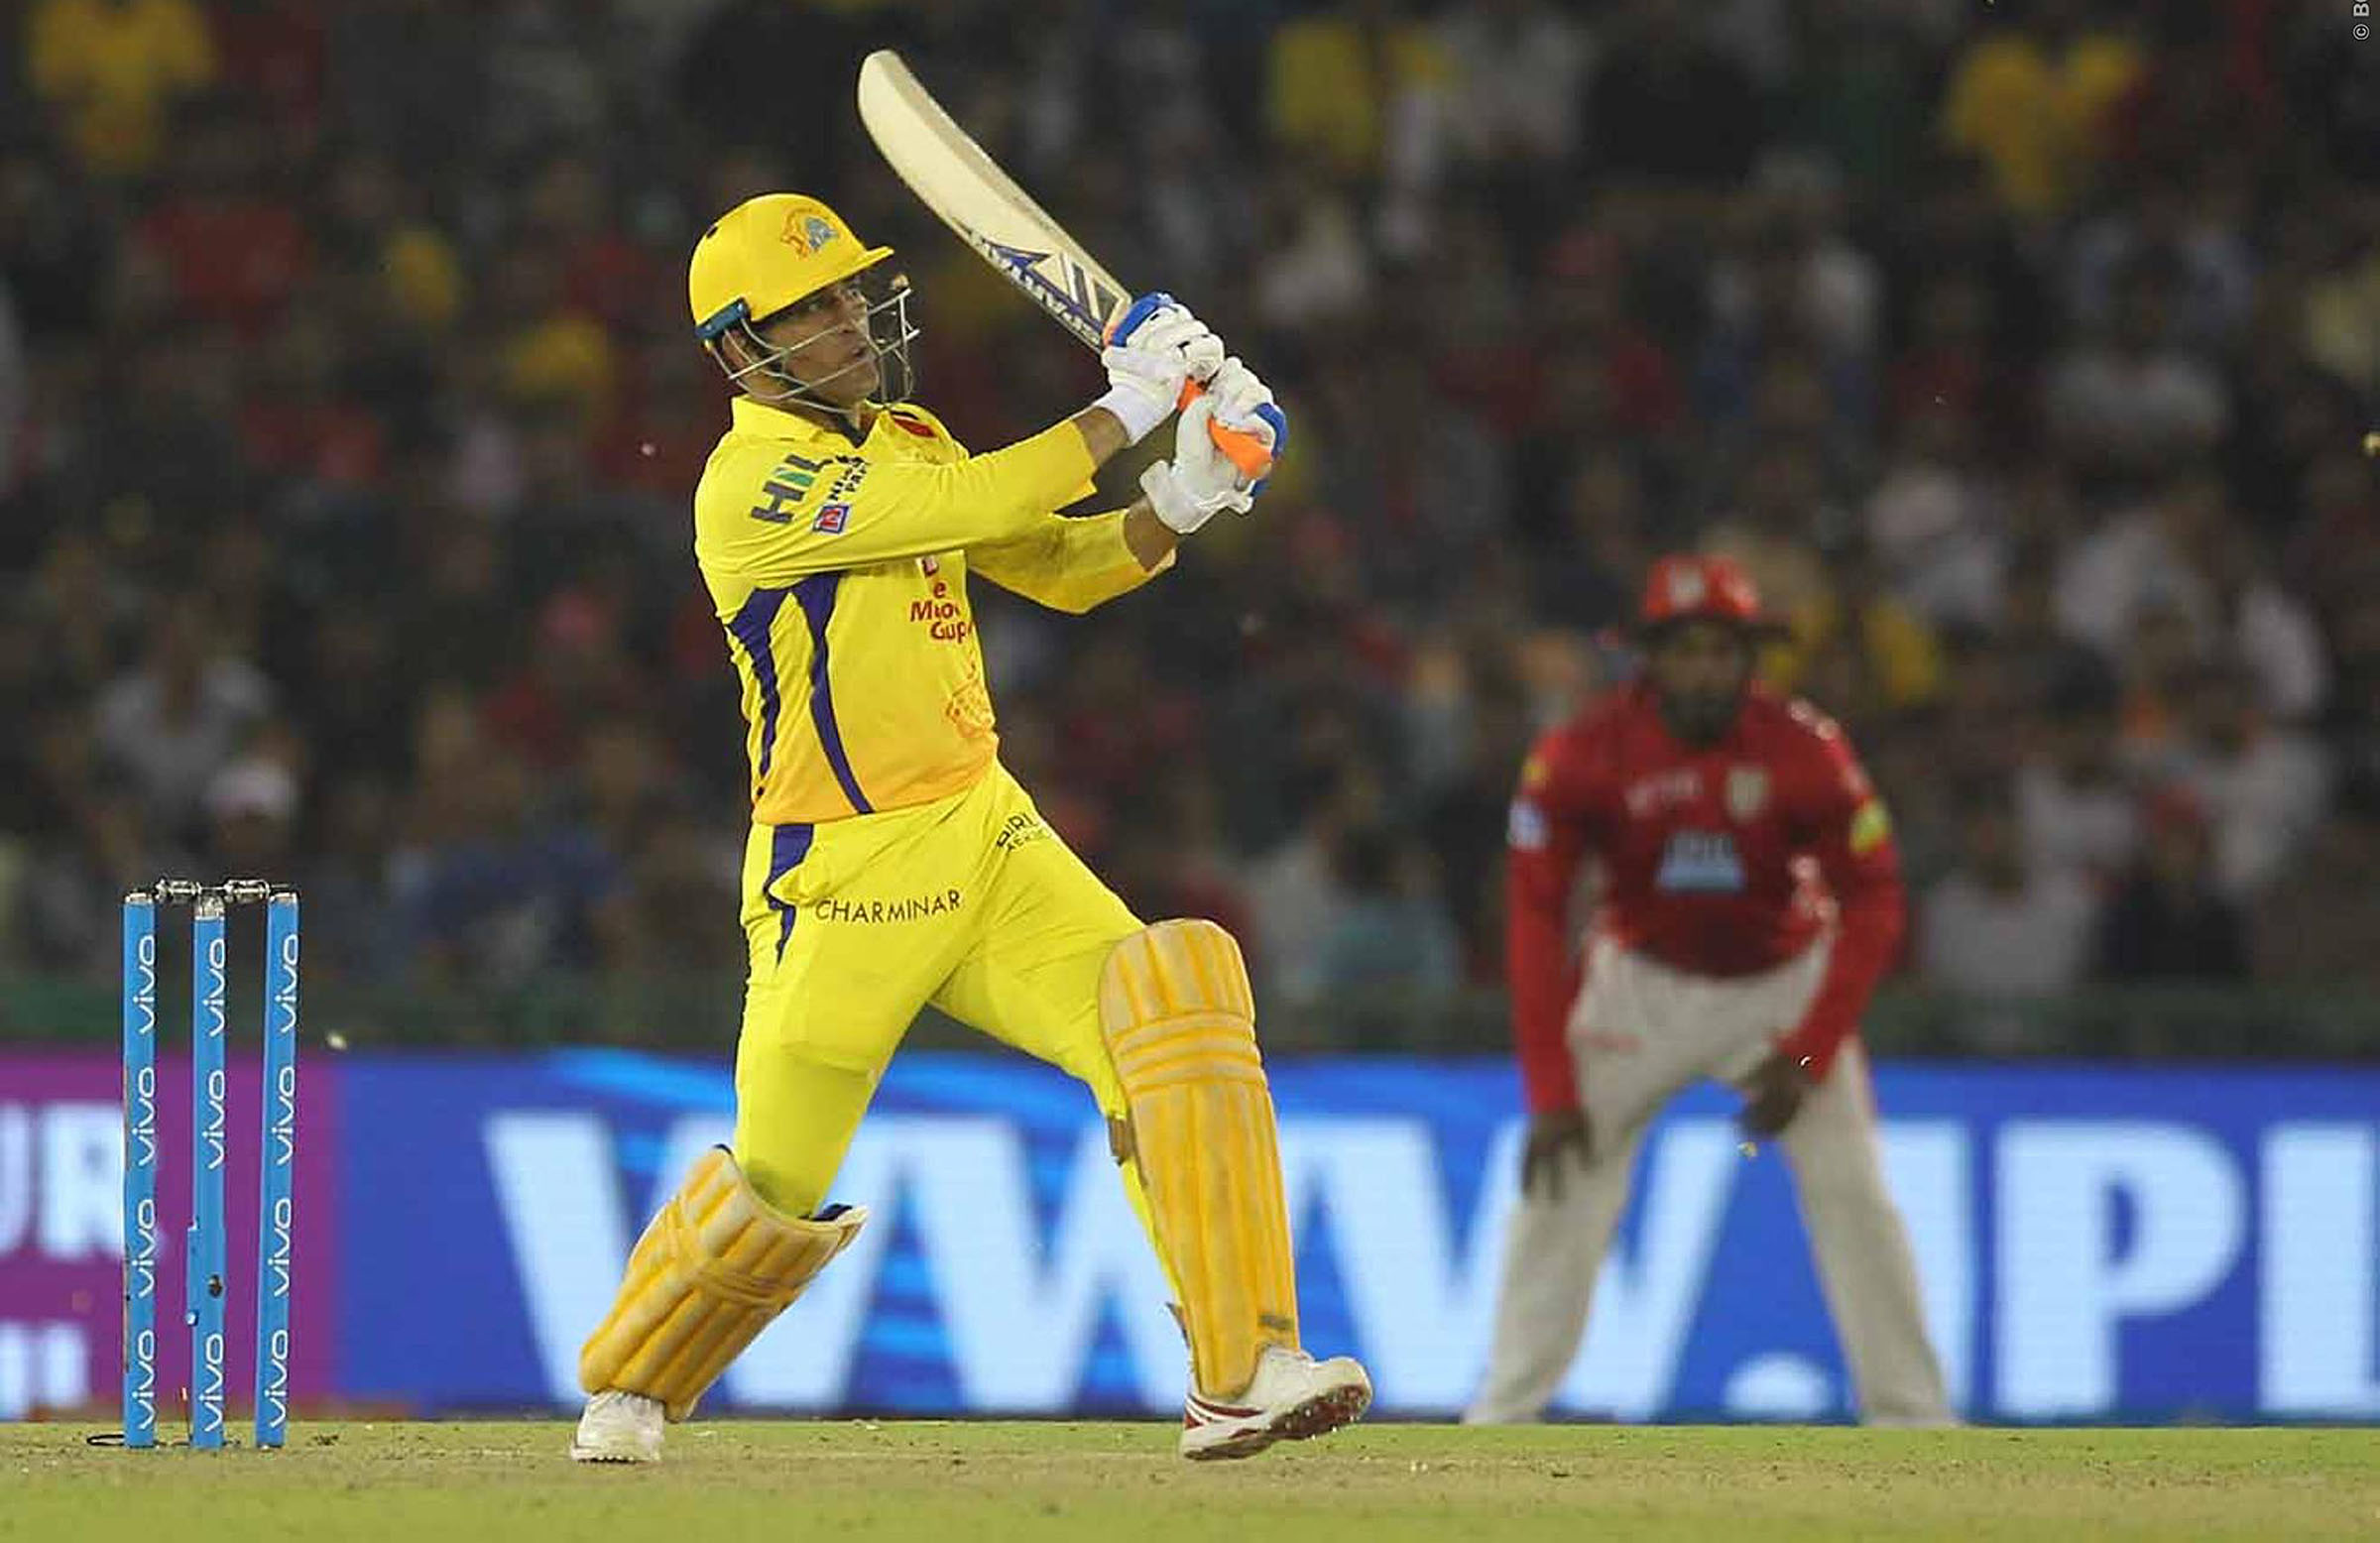 Dhoni Csk Wallpapers Hd: Dhoni's Diagnosis Of 'bad' Back Injury